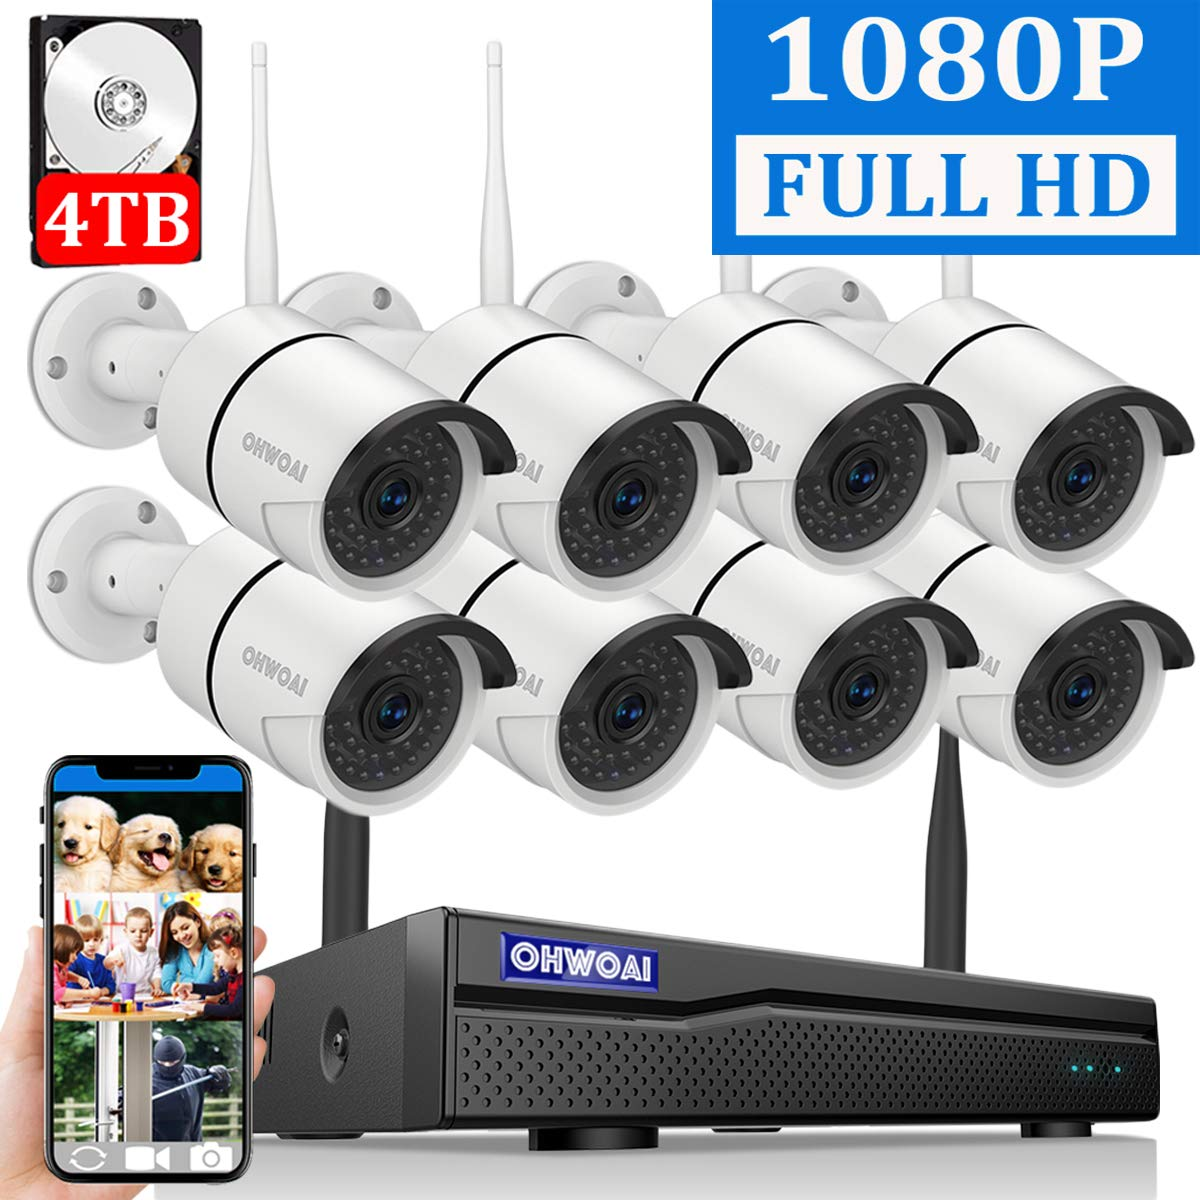 【2019 New】 Security Camera System Wireless, 4TB Hard Drive Pre-Install 8 Channel 1080P NVR, 8PCS 1080P 2.0MP CCTV WI-FI IP Cameras for Homes,OHWOAI HD Surveillance Video Security System. by OHWOAI